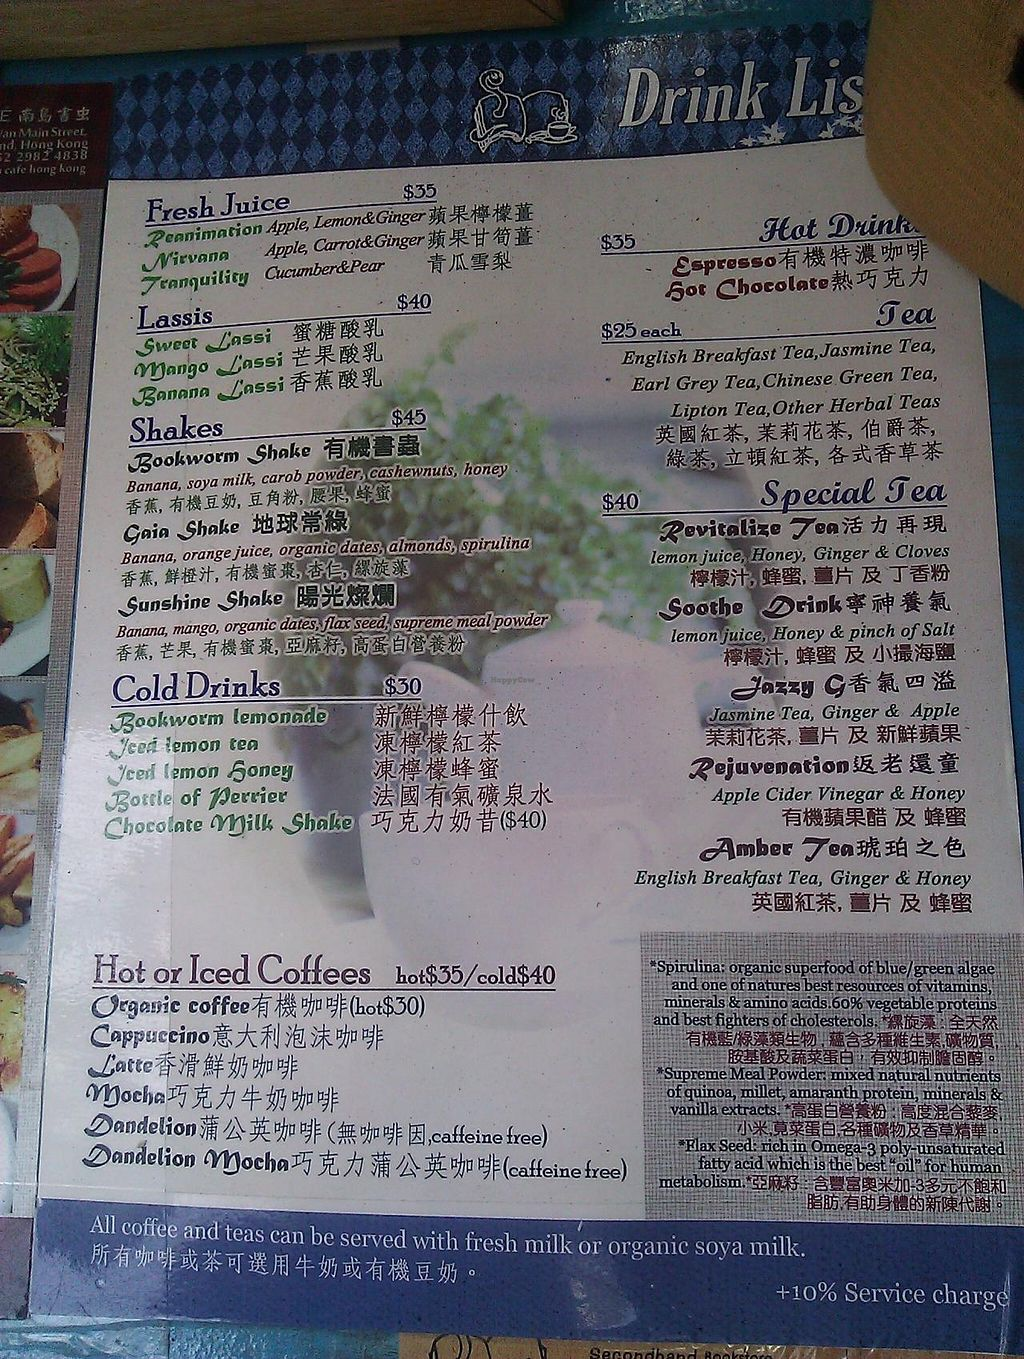 """Photo of Bookworm Cafe  by <a href=""""/members/profile/dicer"""">dicer</a> <br/>Menu <br/> August 28, 2014  - <a href='/contact/abuse/image/16/78453'>Report</a>"""